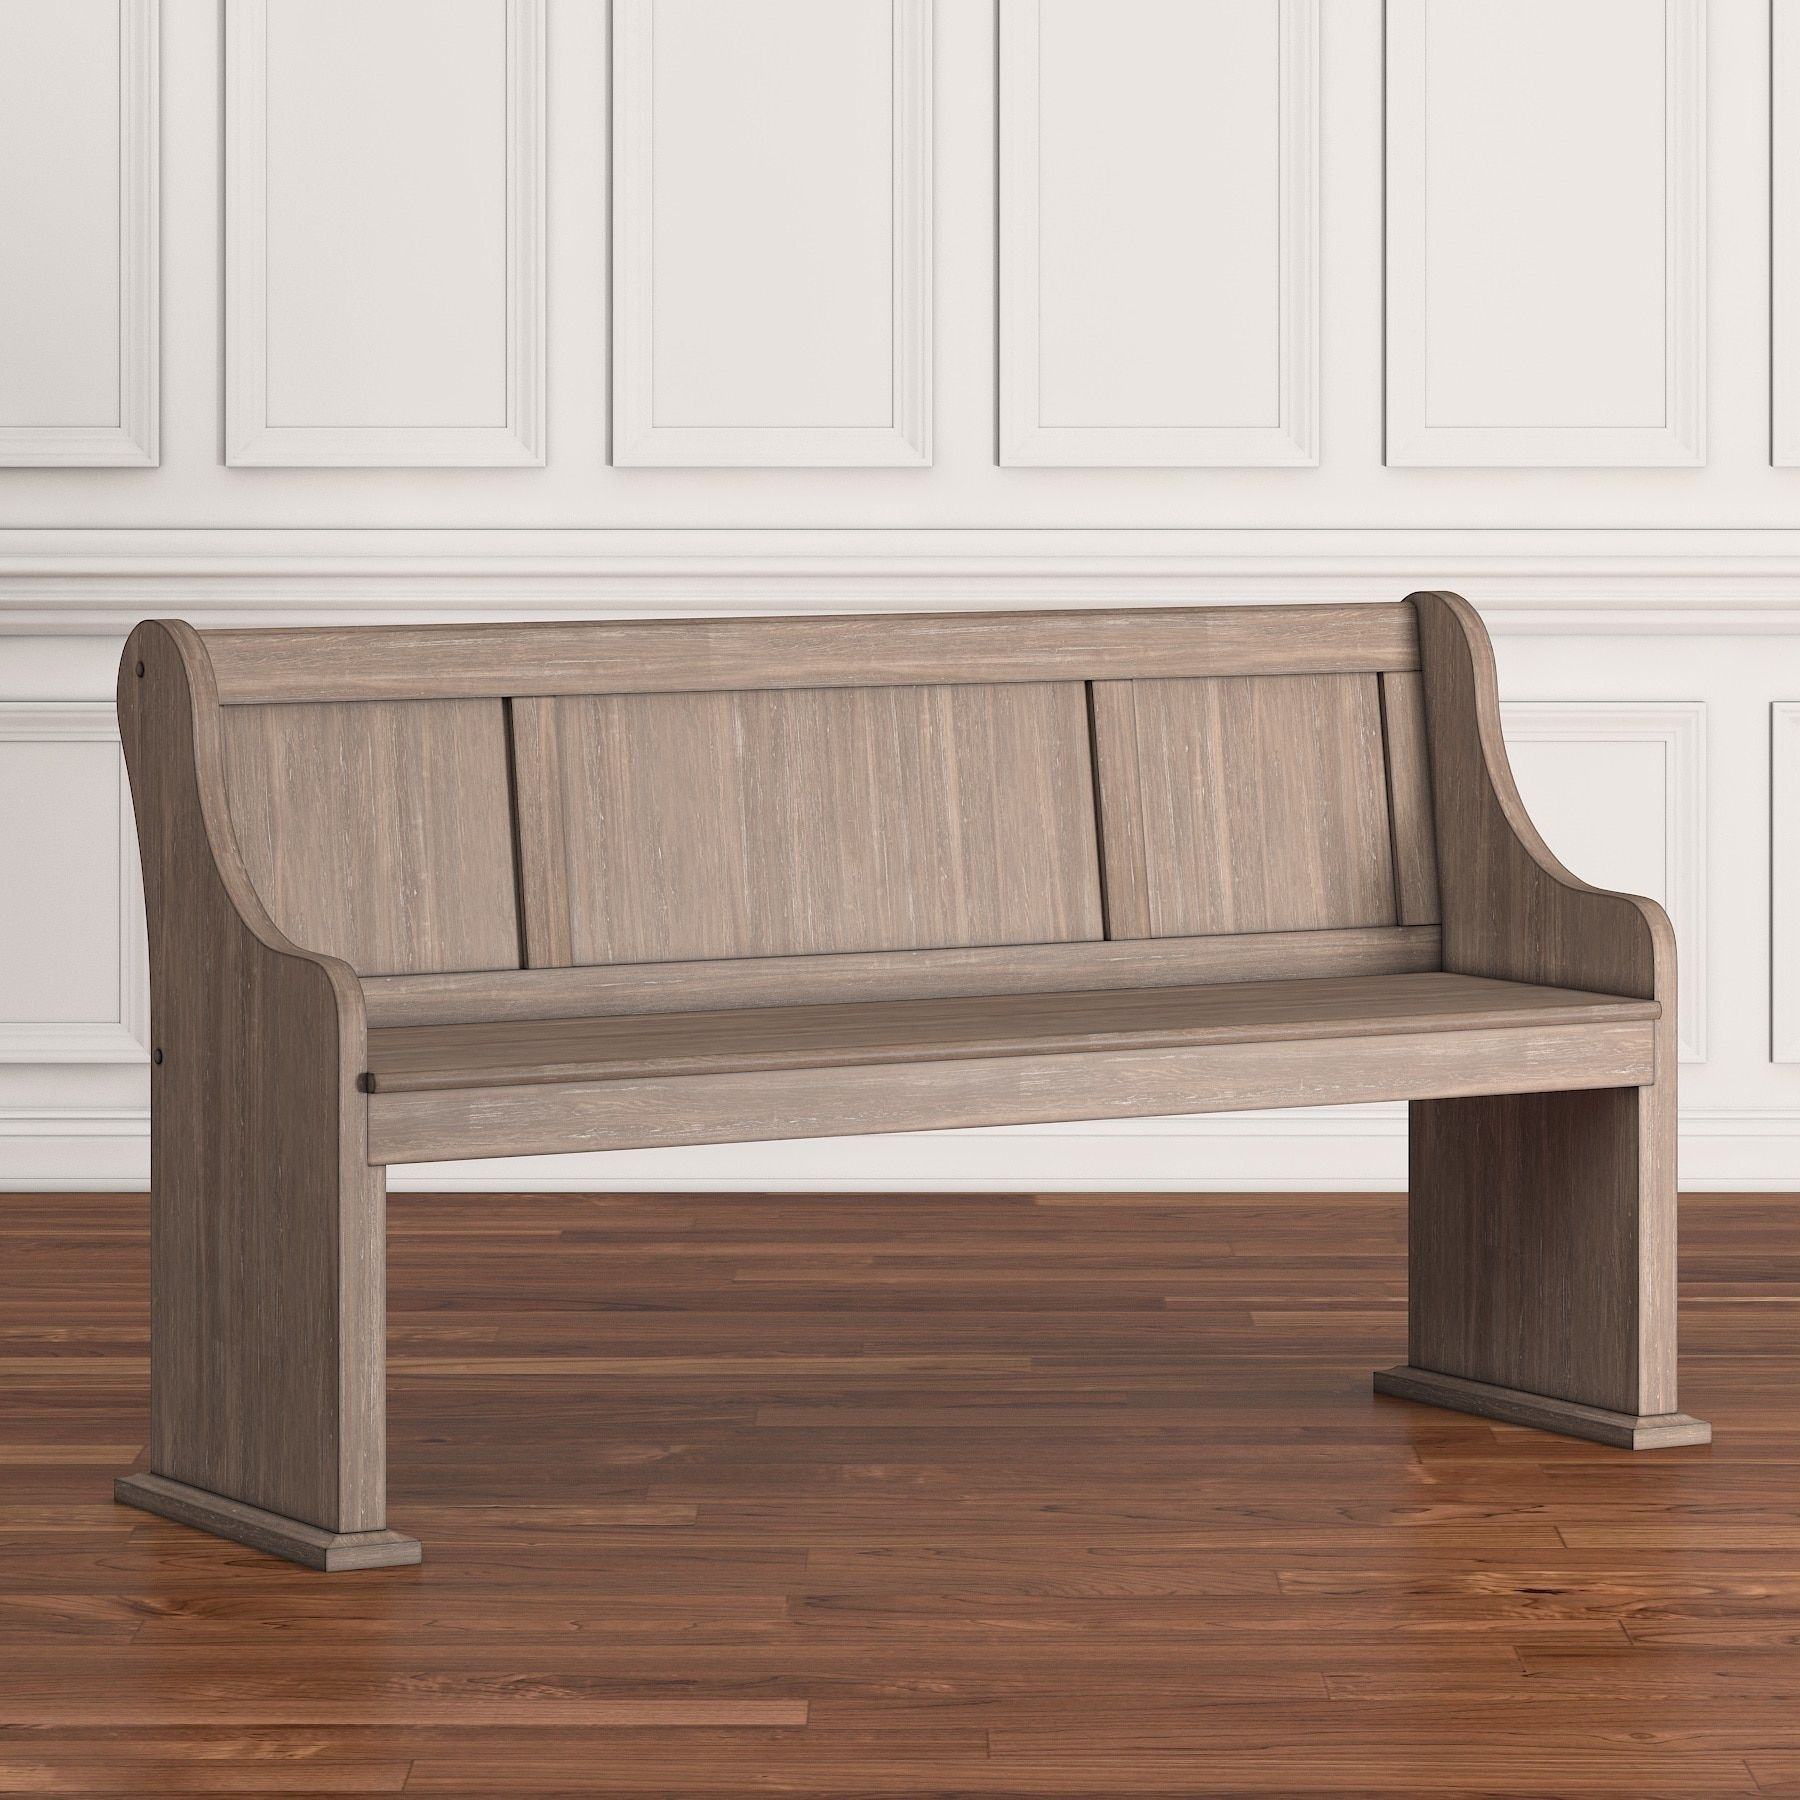 Rowyn Wood 62 Inch Wire Brushed Entryway Dining Bench by iNSPIRE Q